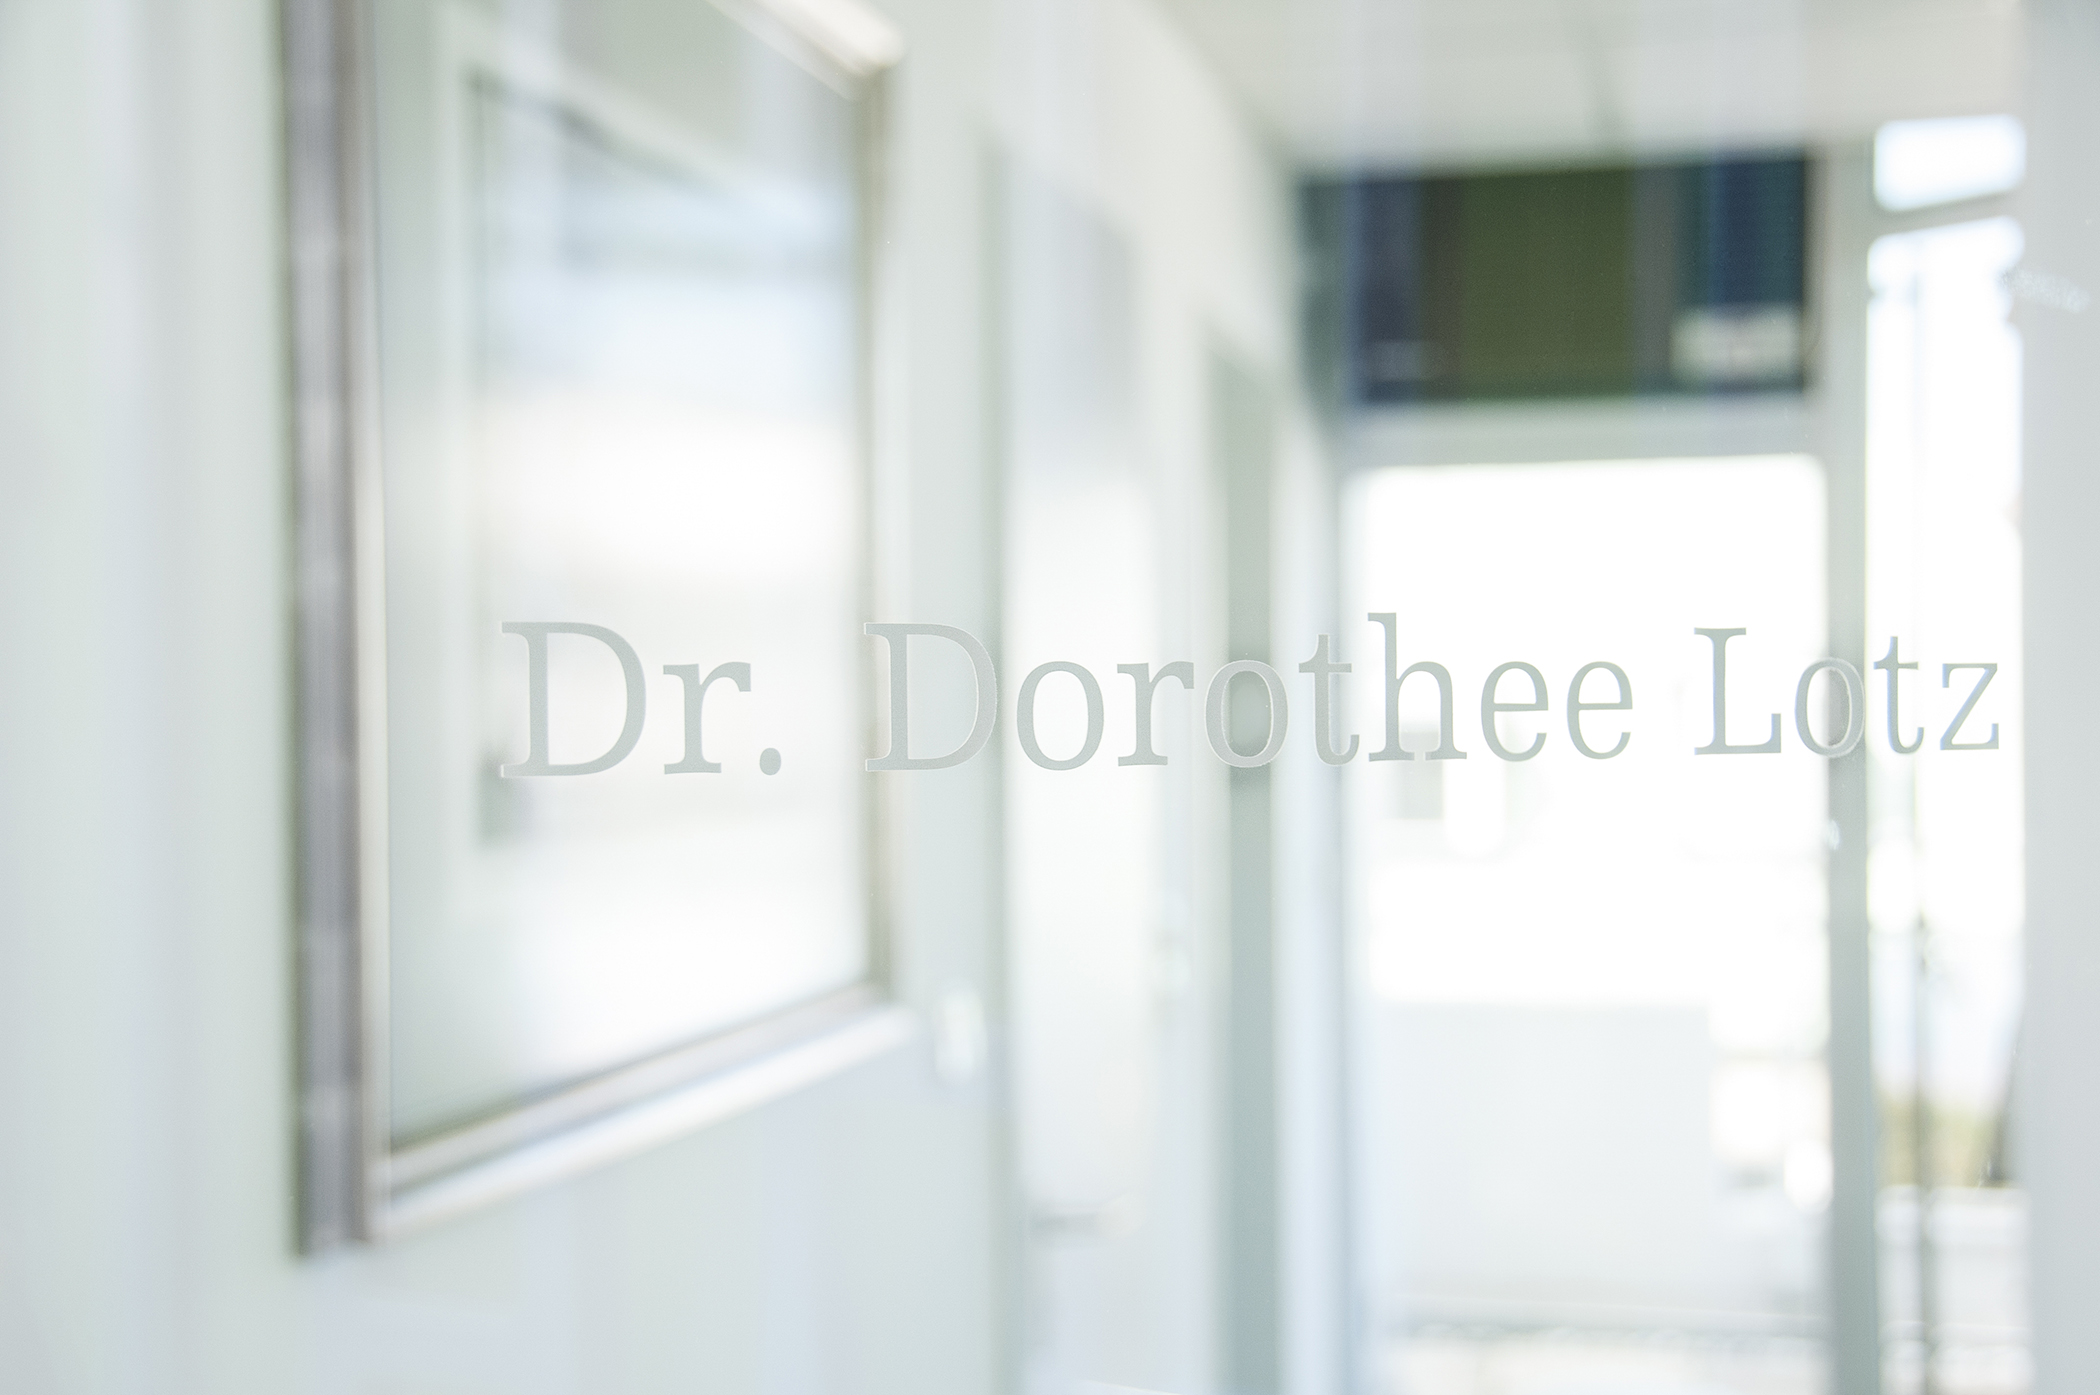 Dr. Dorothee Lotz Eingang